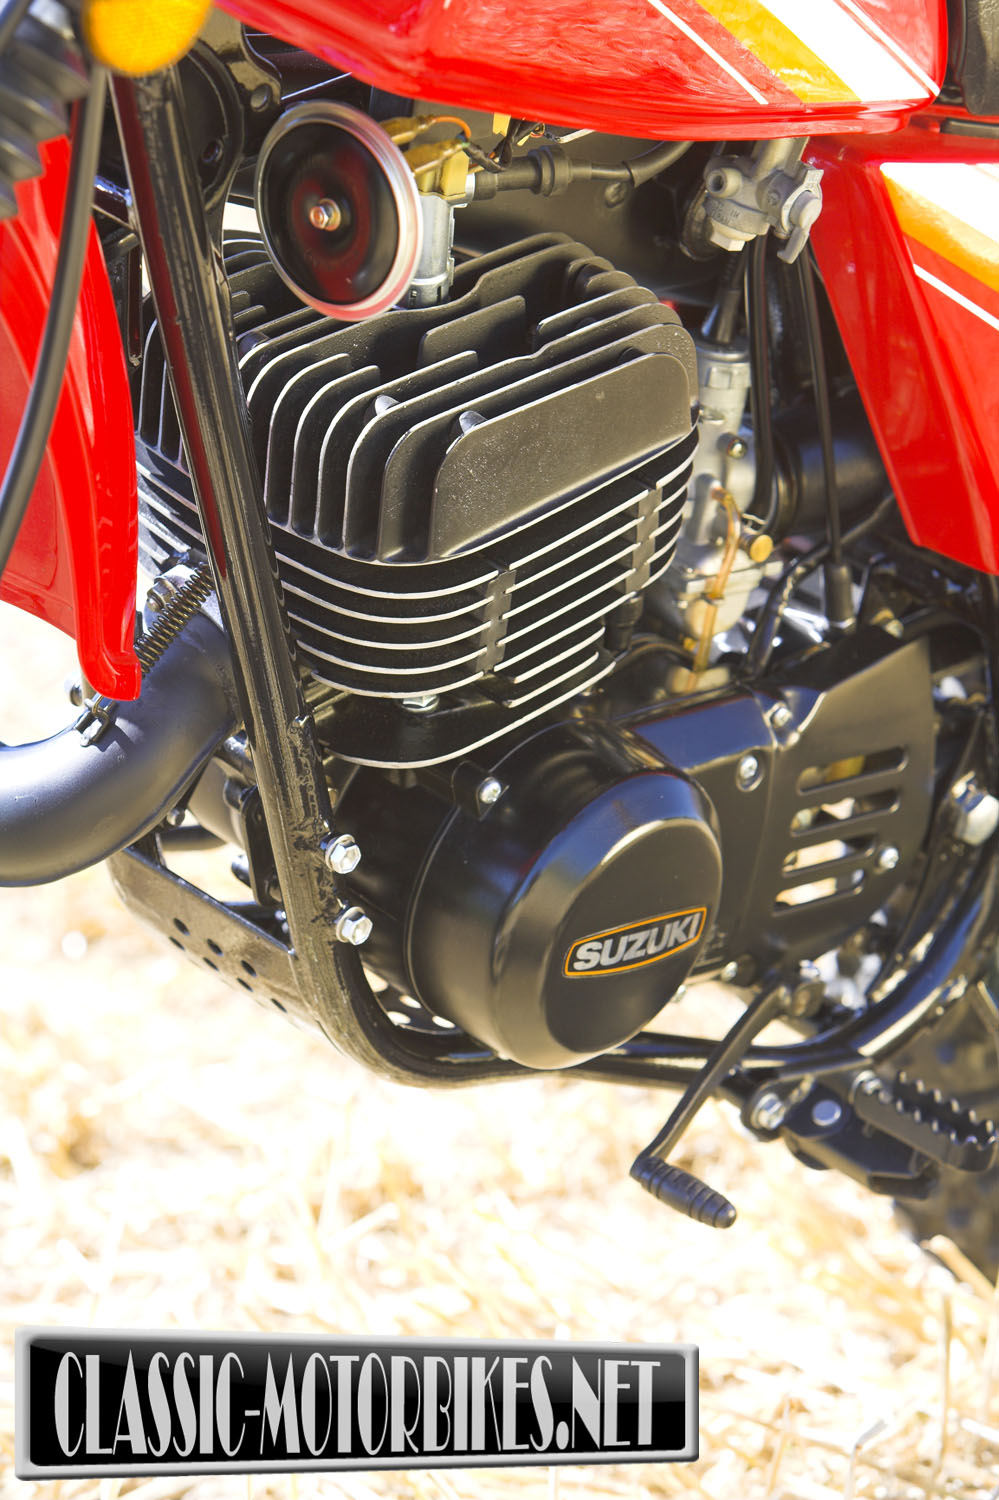 hight resolution of suzuki claimed the ts was heavily influenced and based upon the motocross machines of 1968 but